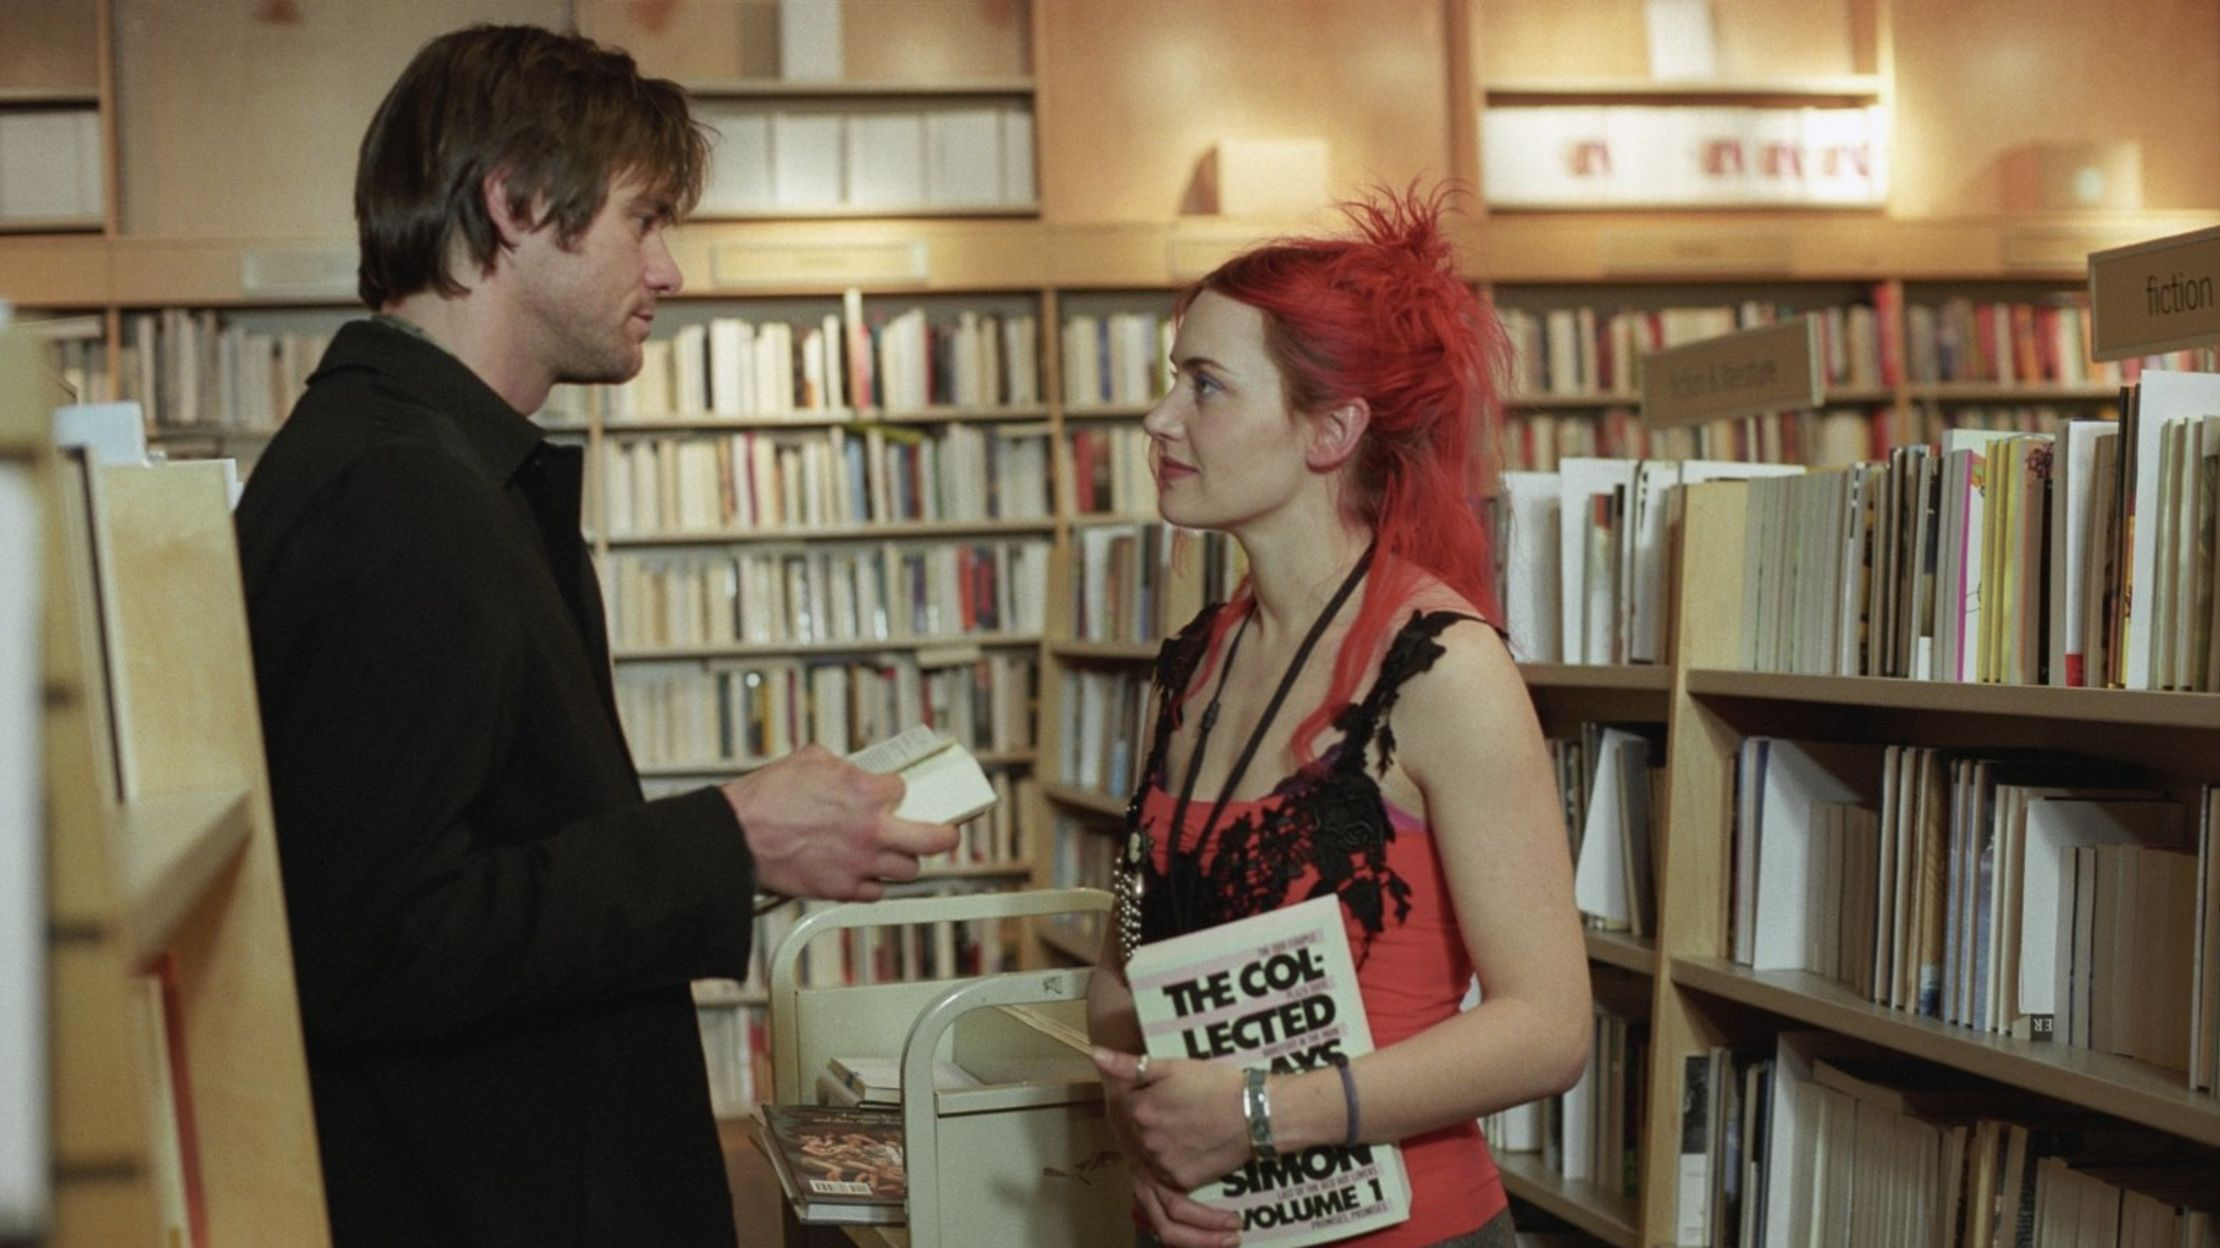 15 Unforgettable Facts About Eternal Sunshine Of The Spotless